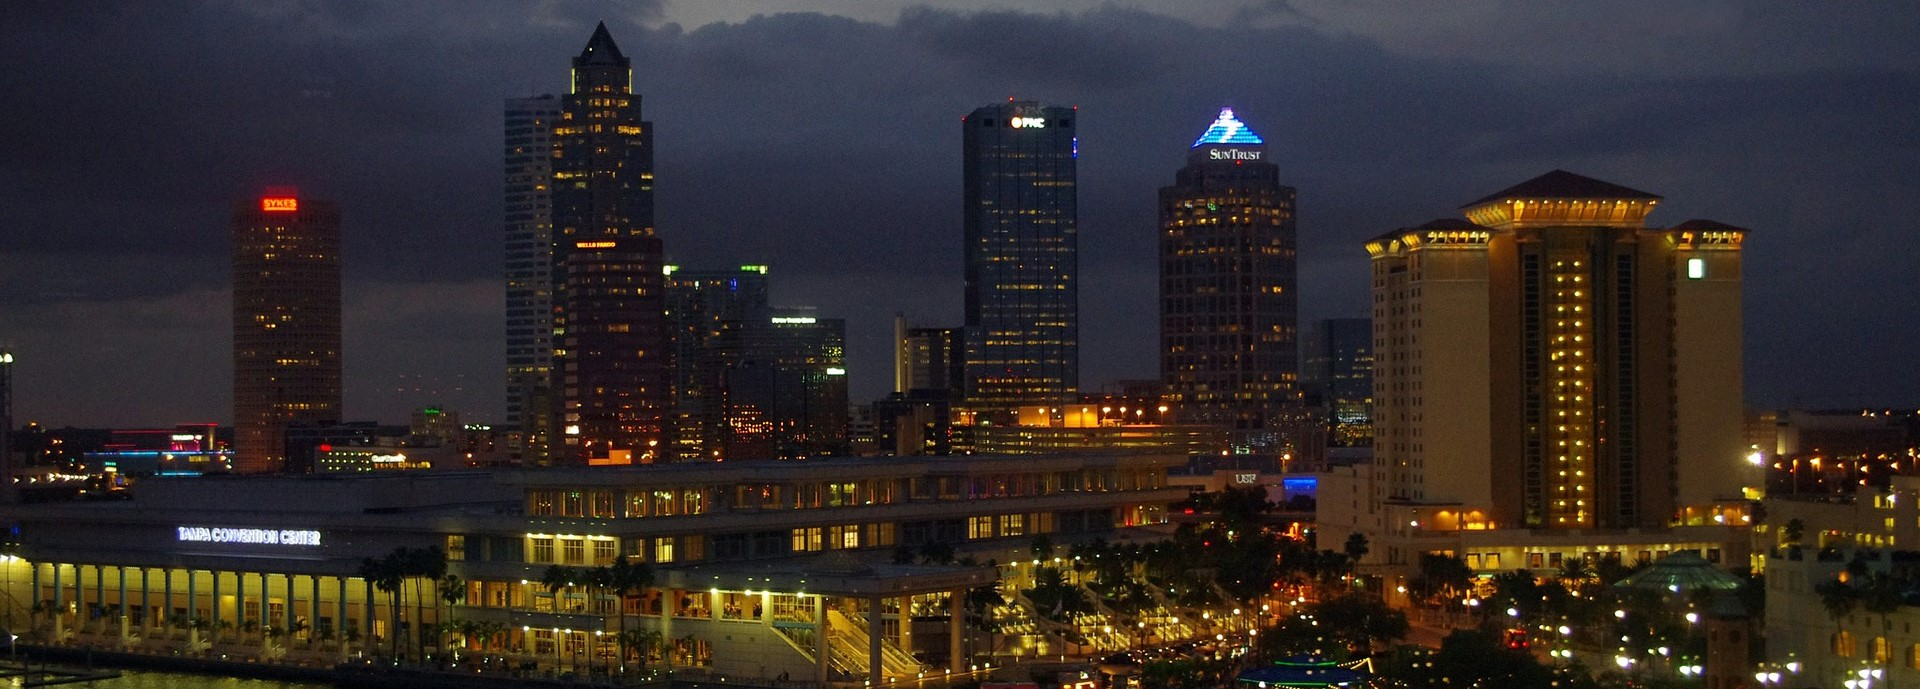 Night Skyline in Tampa, Florida | Breast Cancer Car Donations